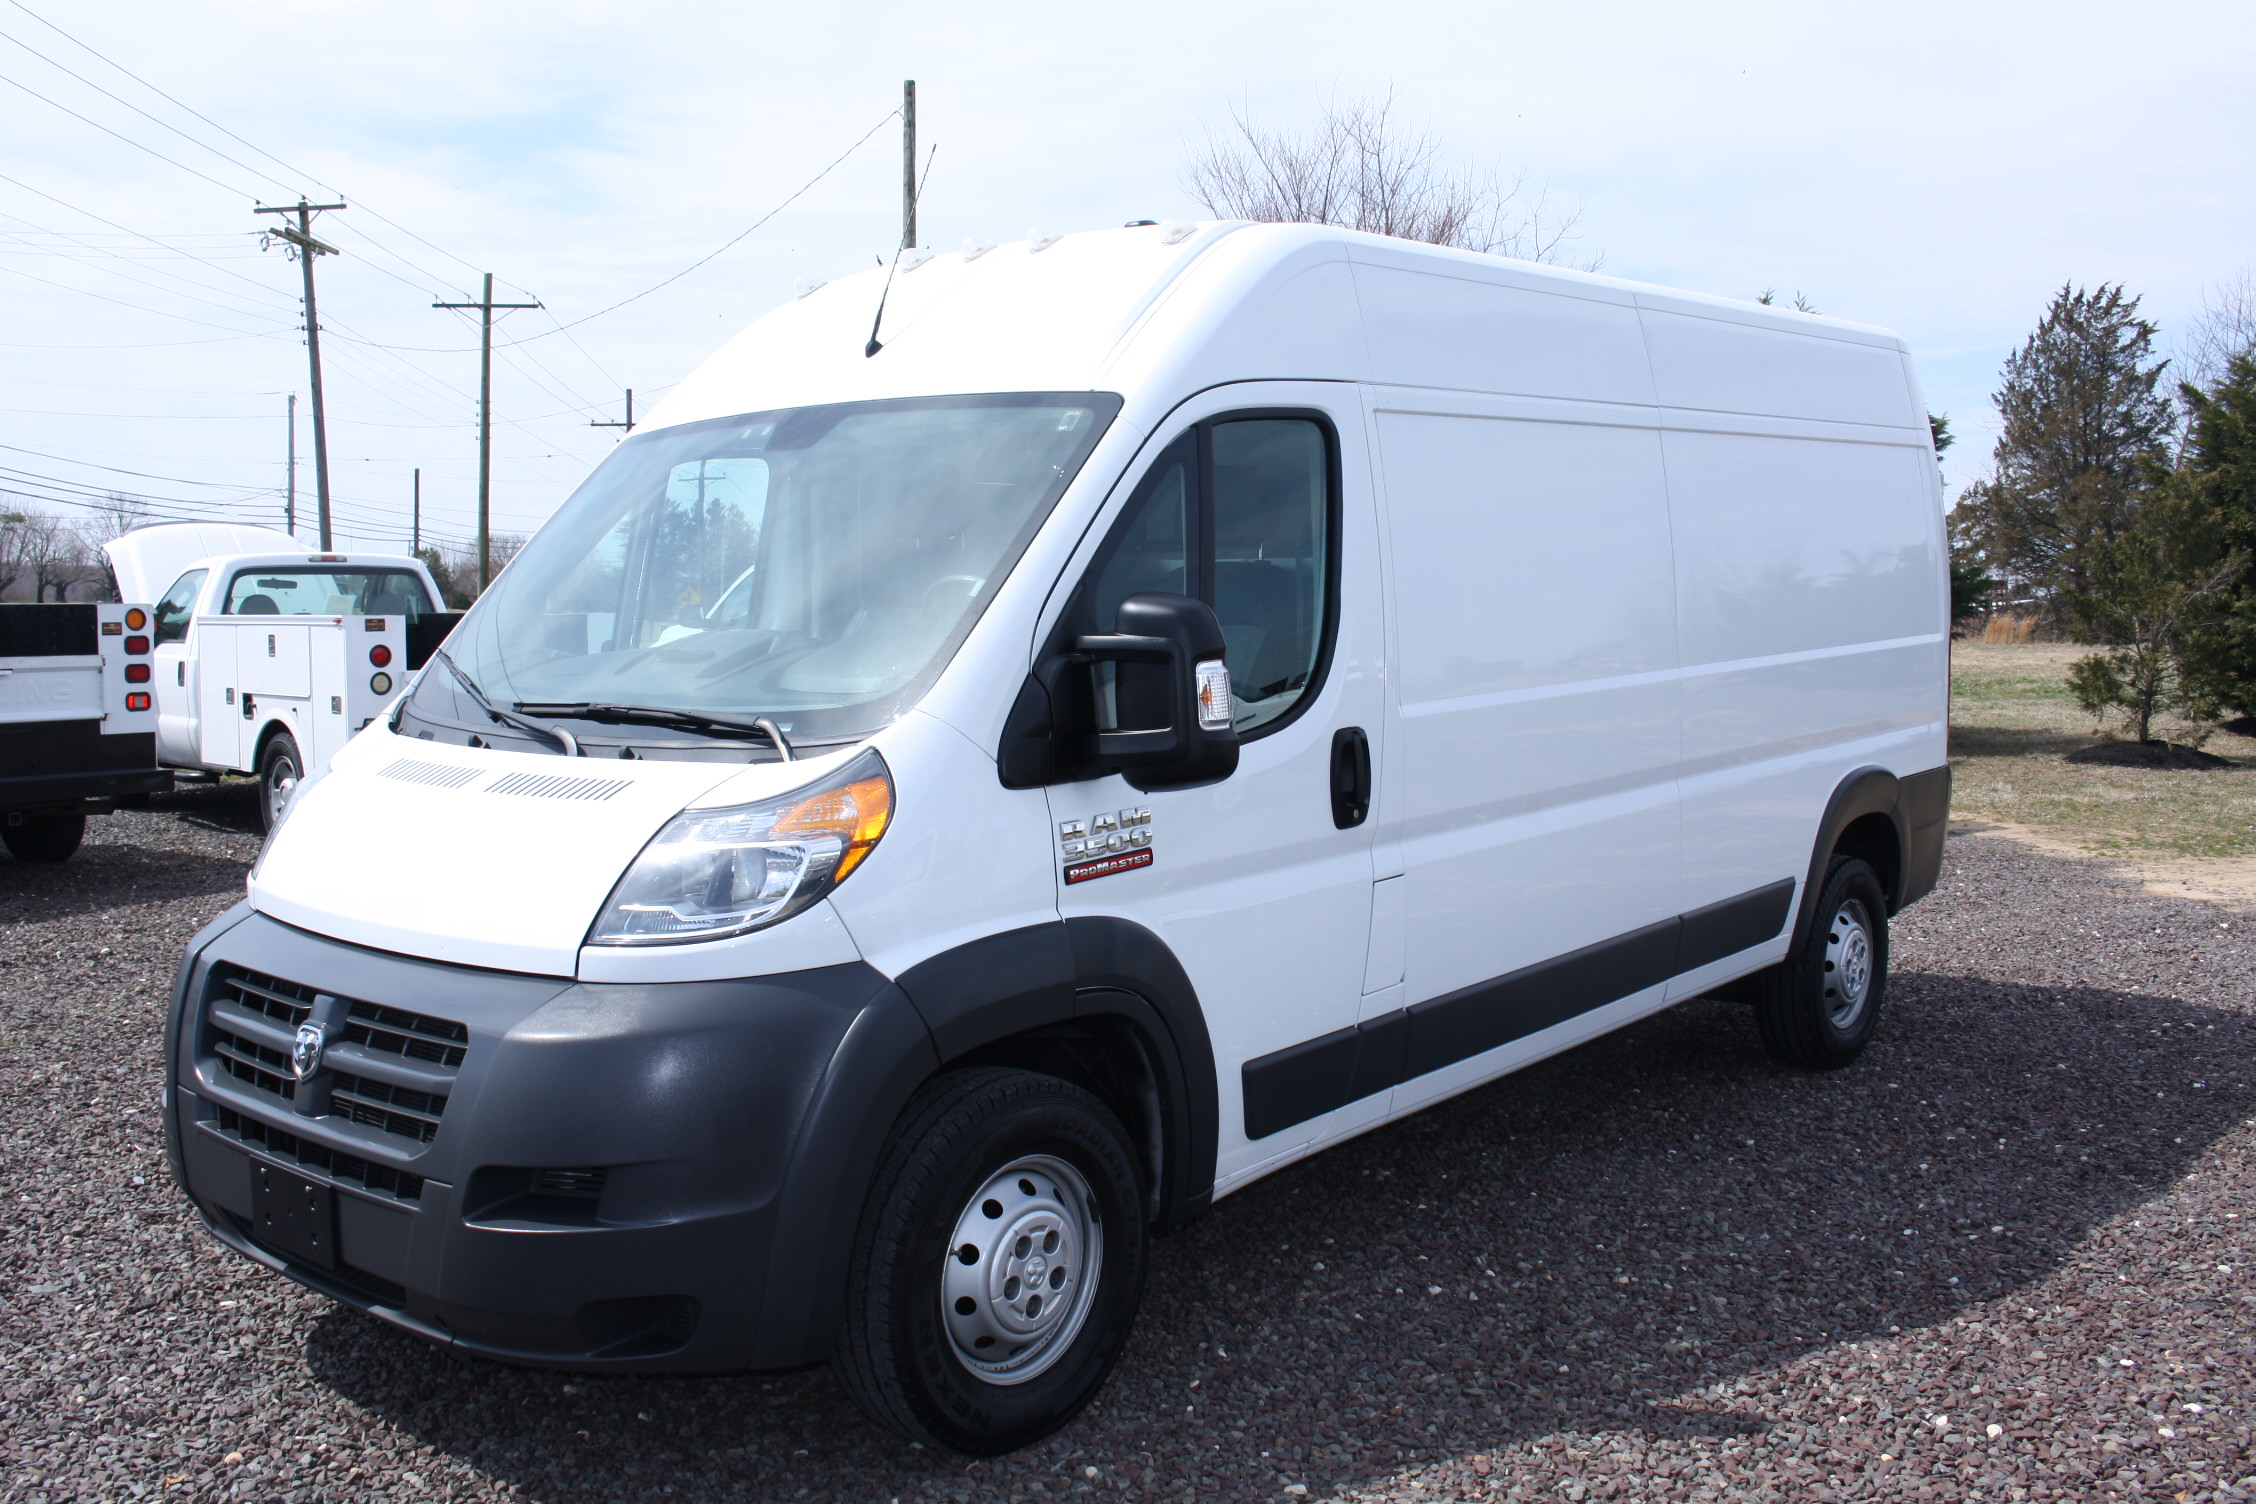 IMG 3051 - 2015 RAM PROMASTER 3500 HIGH ROOF VAN WITH ECODIESEL